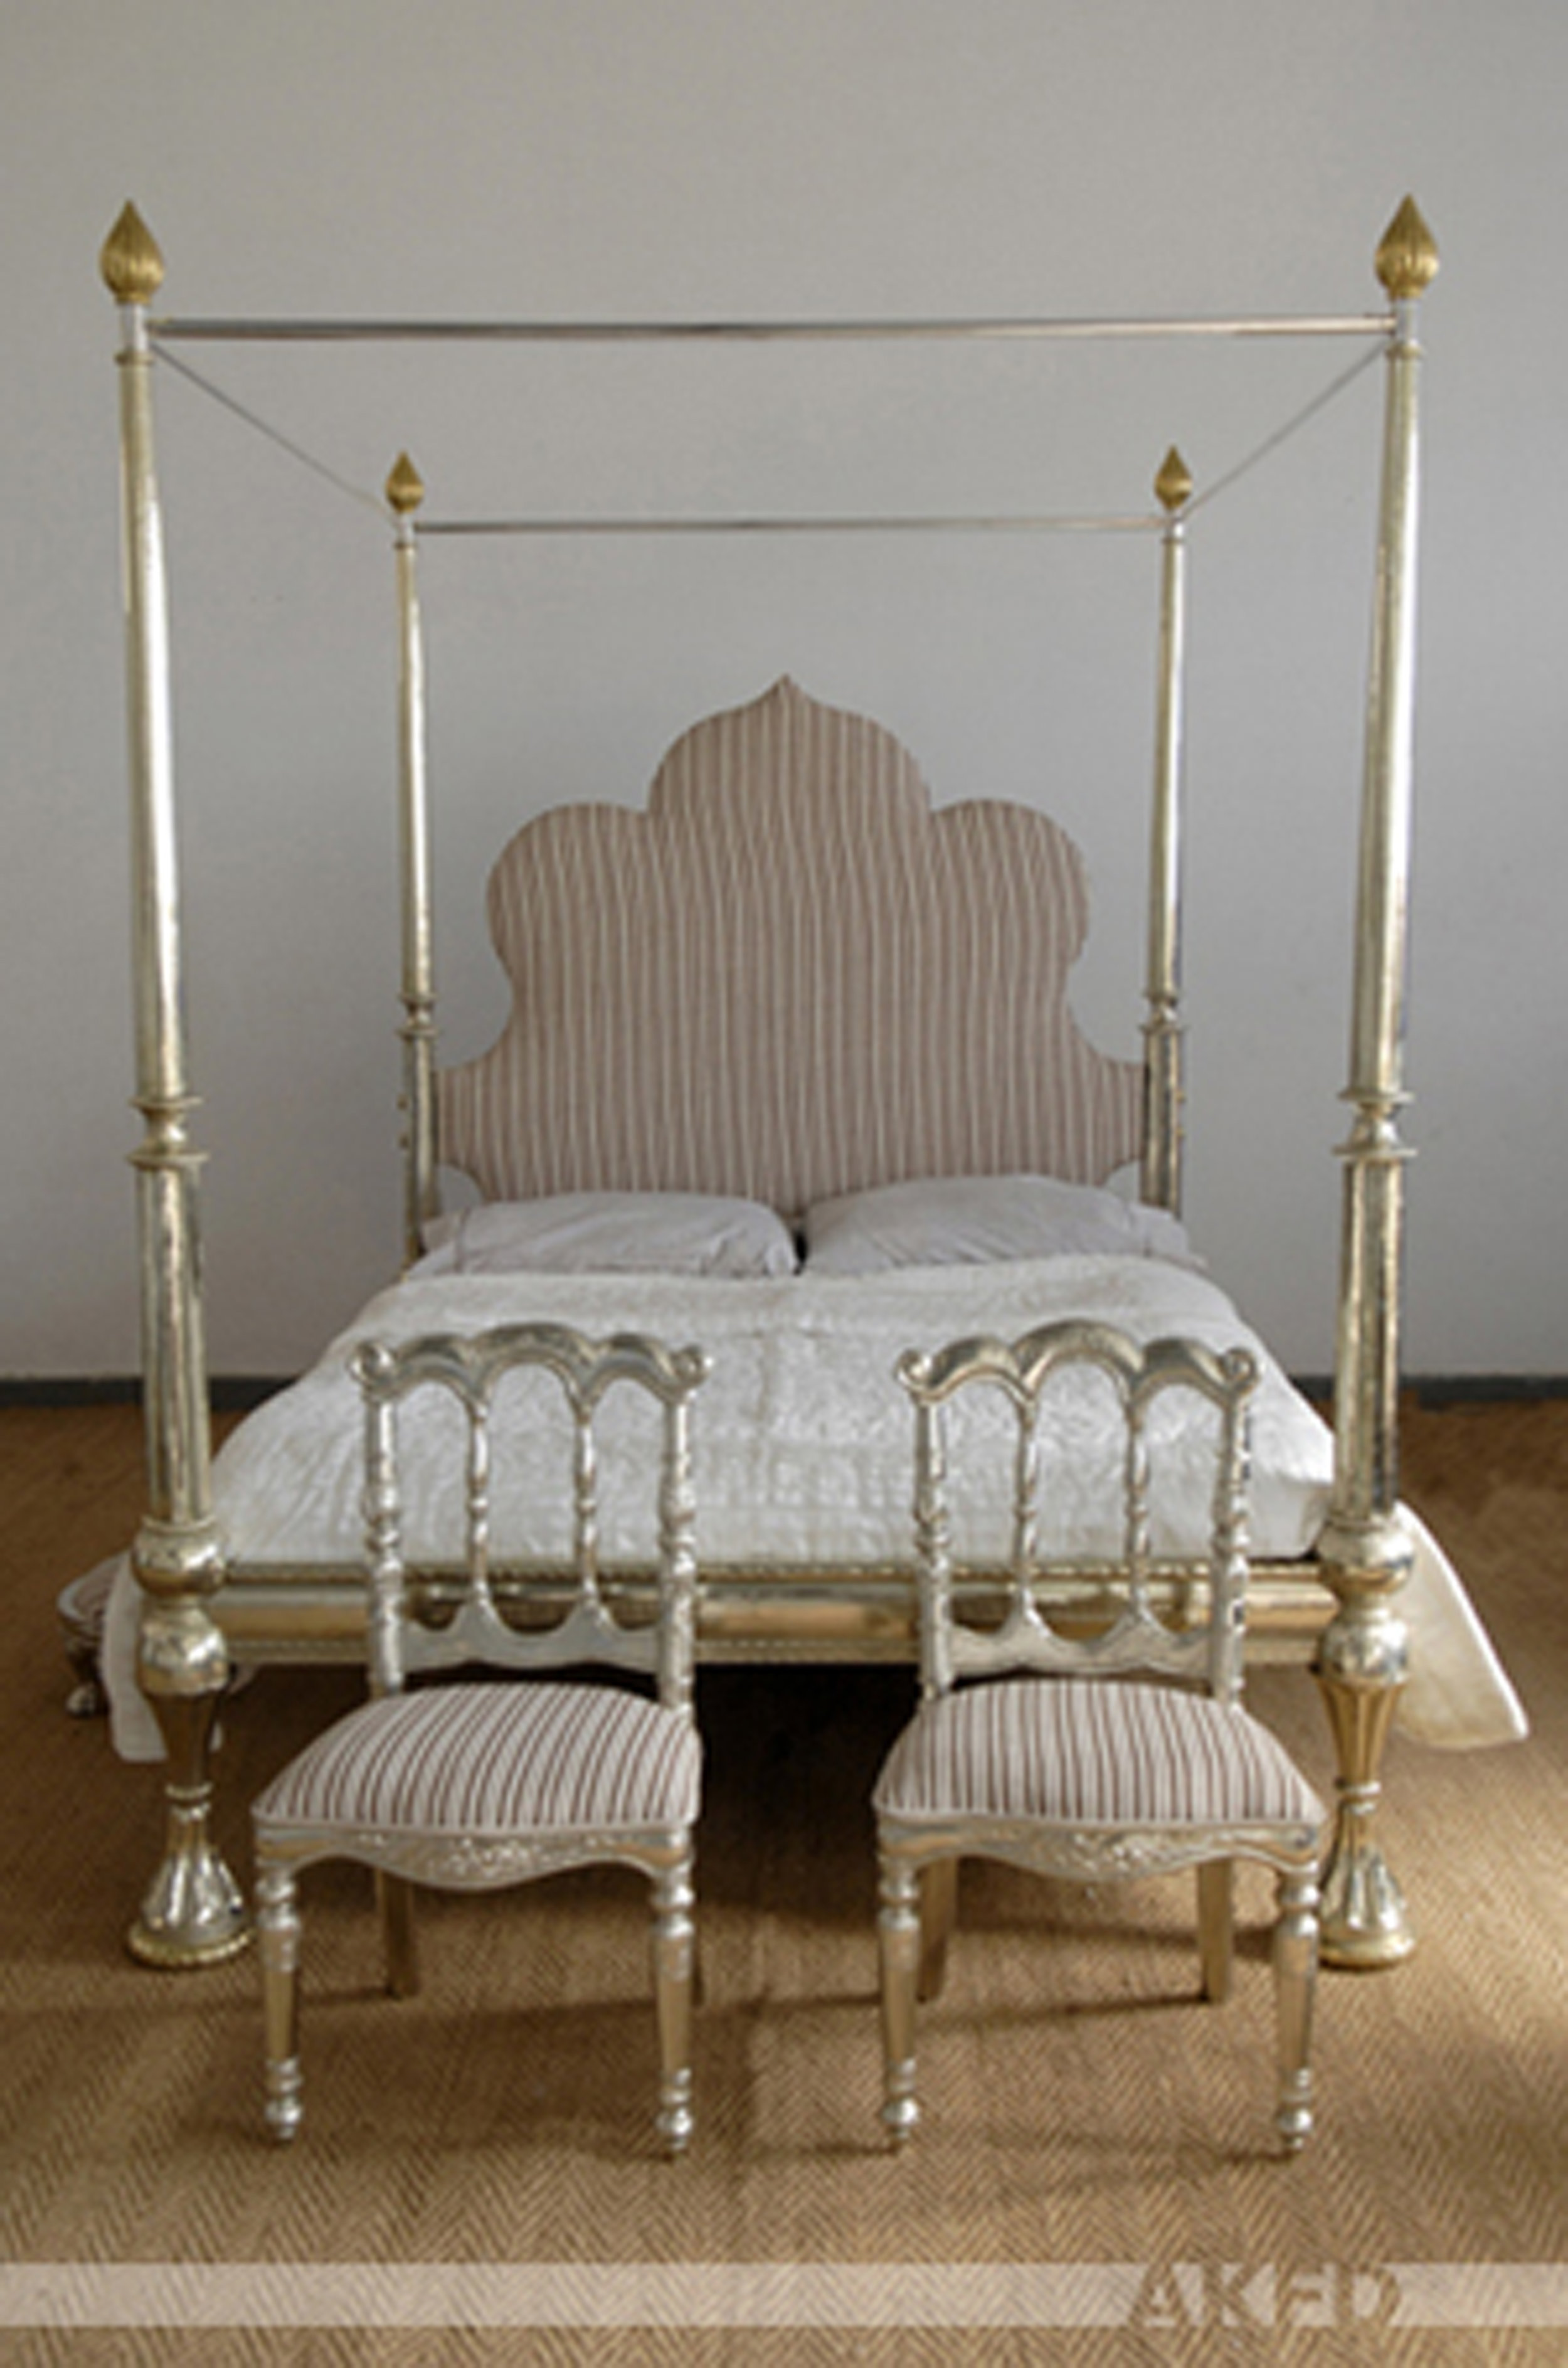 German Silver JB Bed _1.jpg